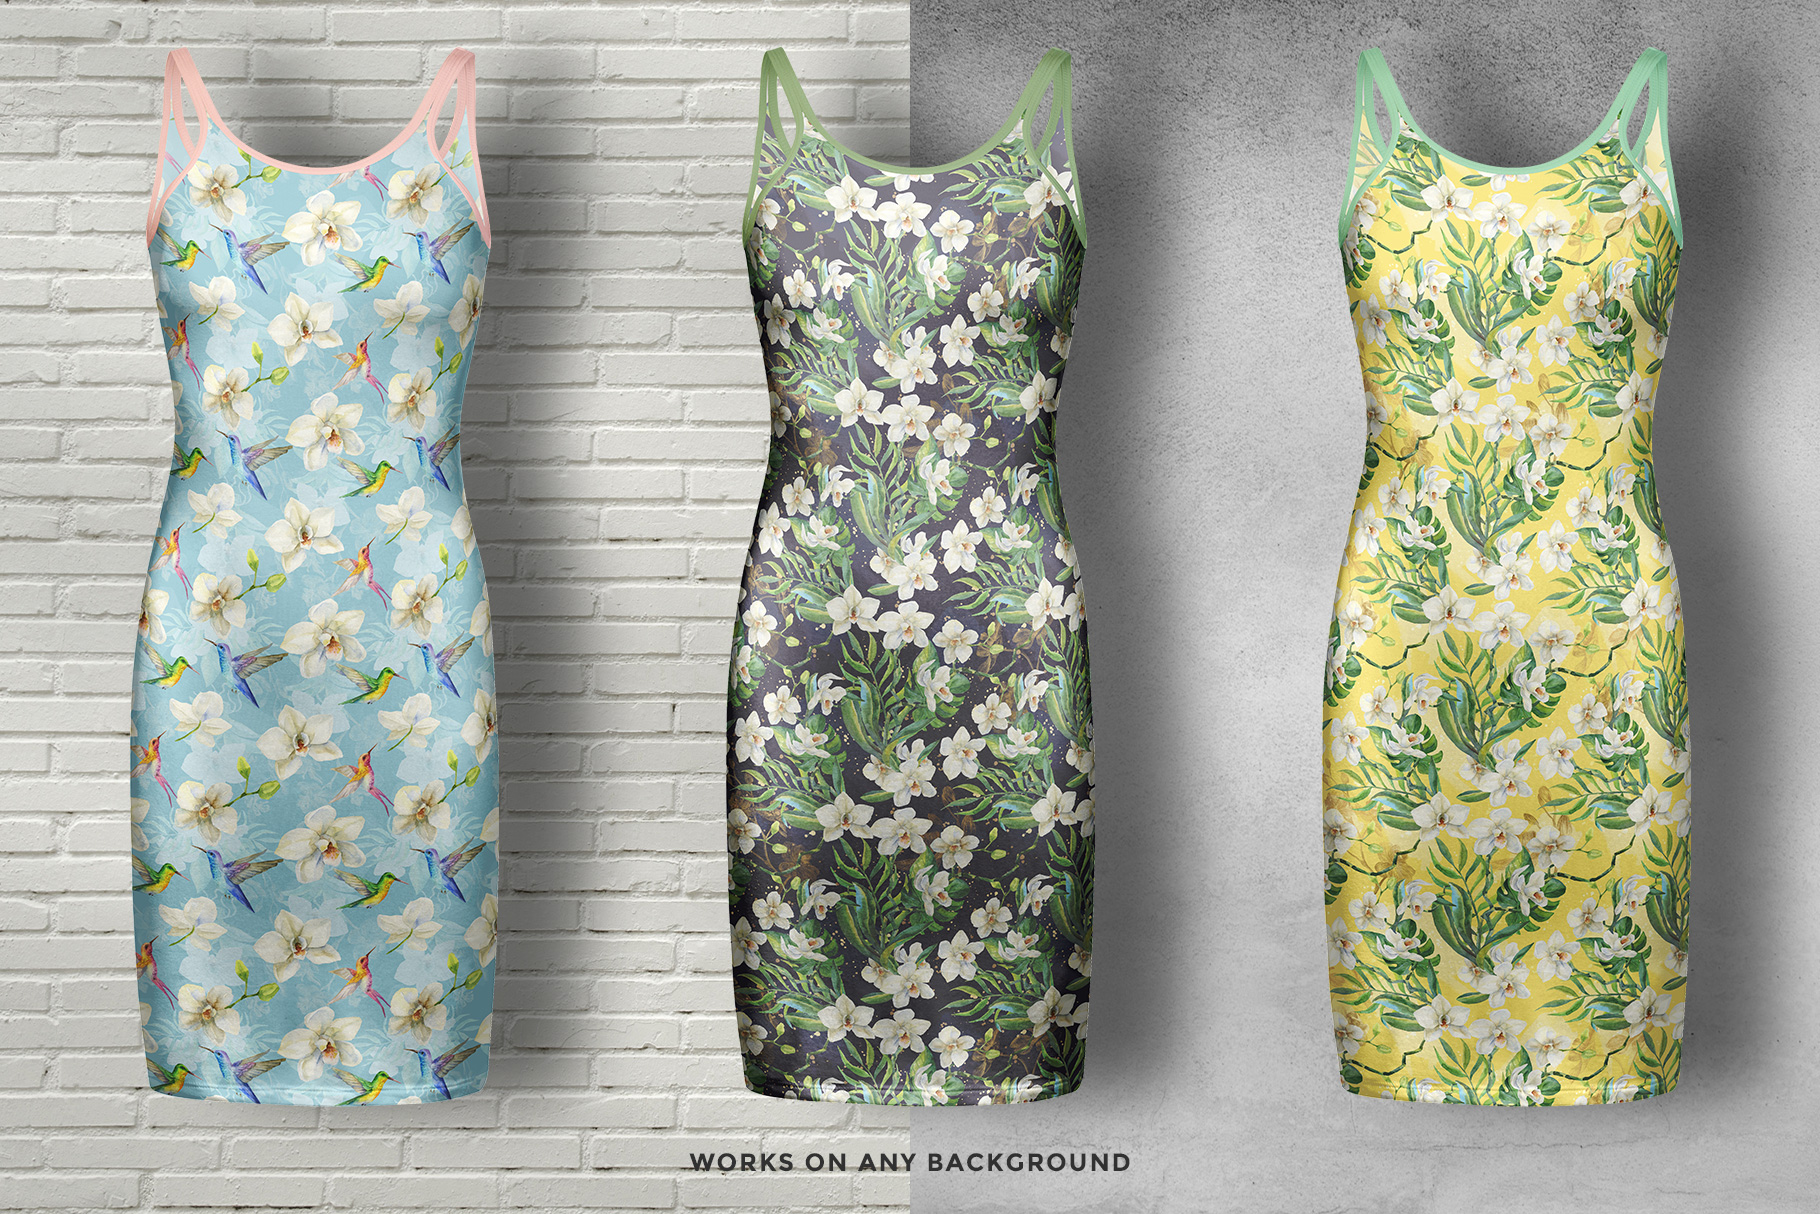 background options of the women's long strap dress mockup